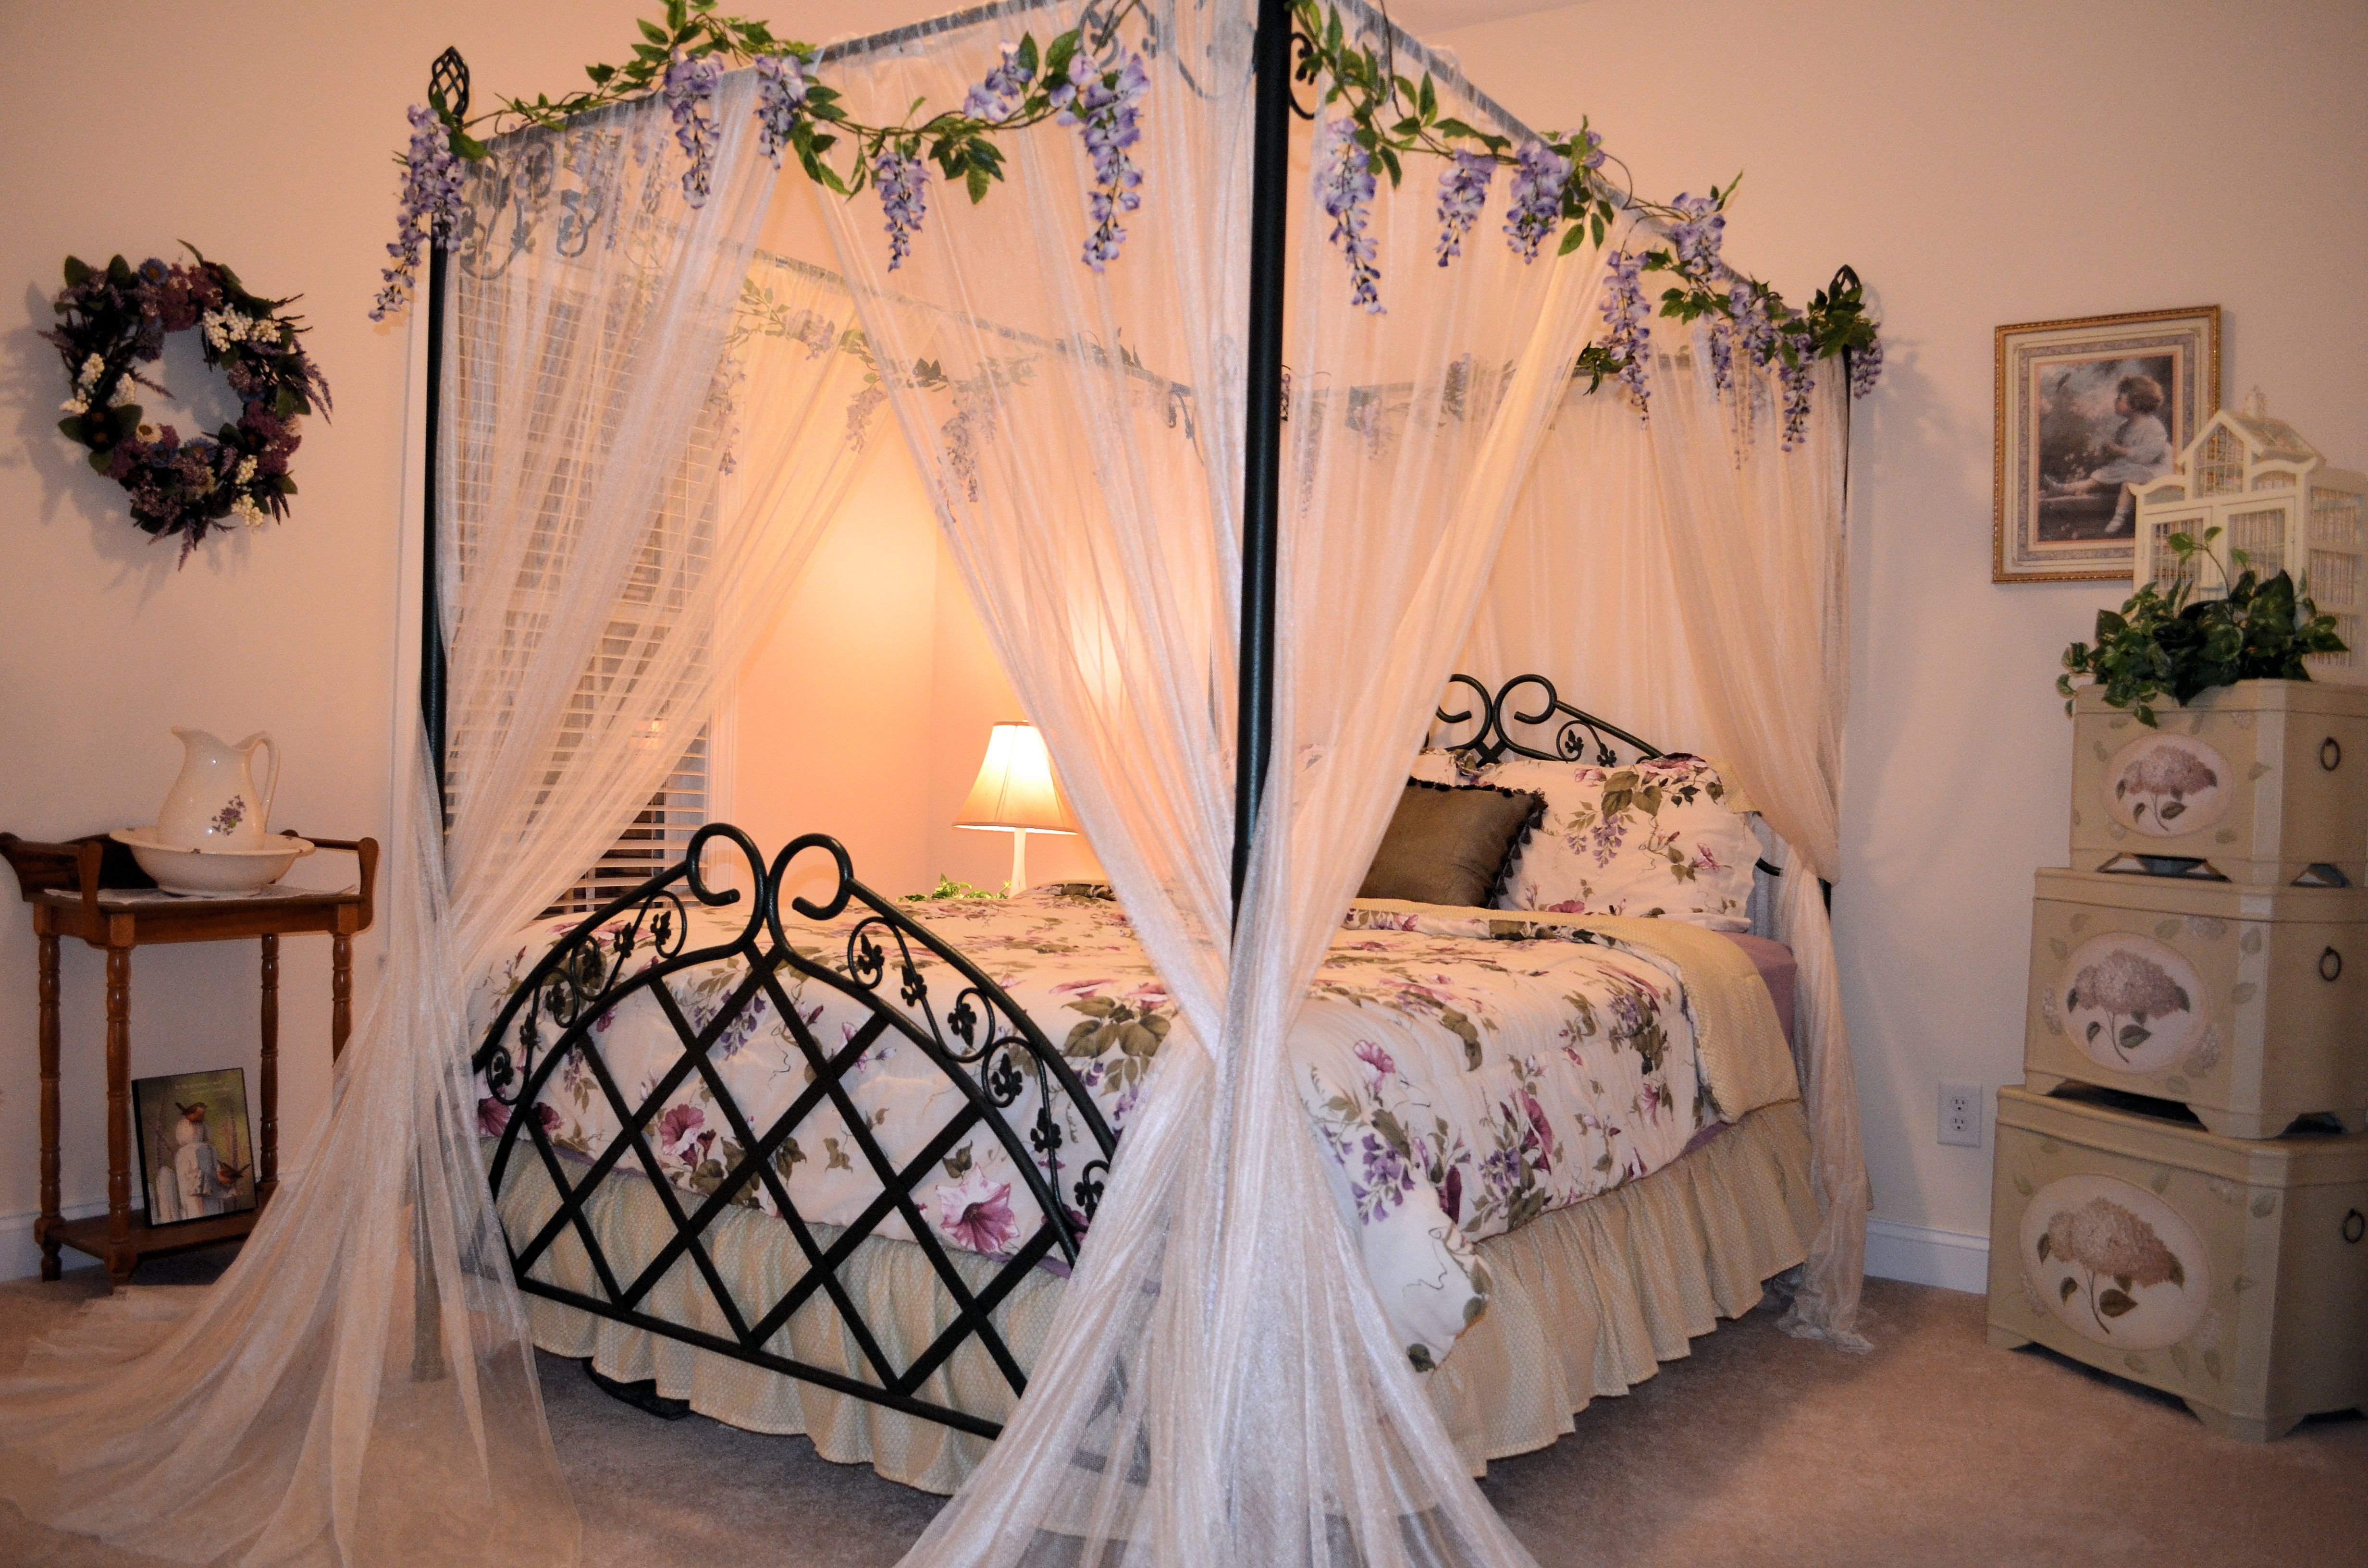 Canopy Bed With Hanging Wisteria Garland Home Home Decor Decor